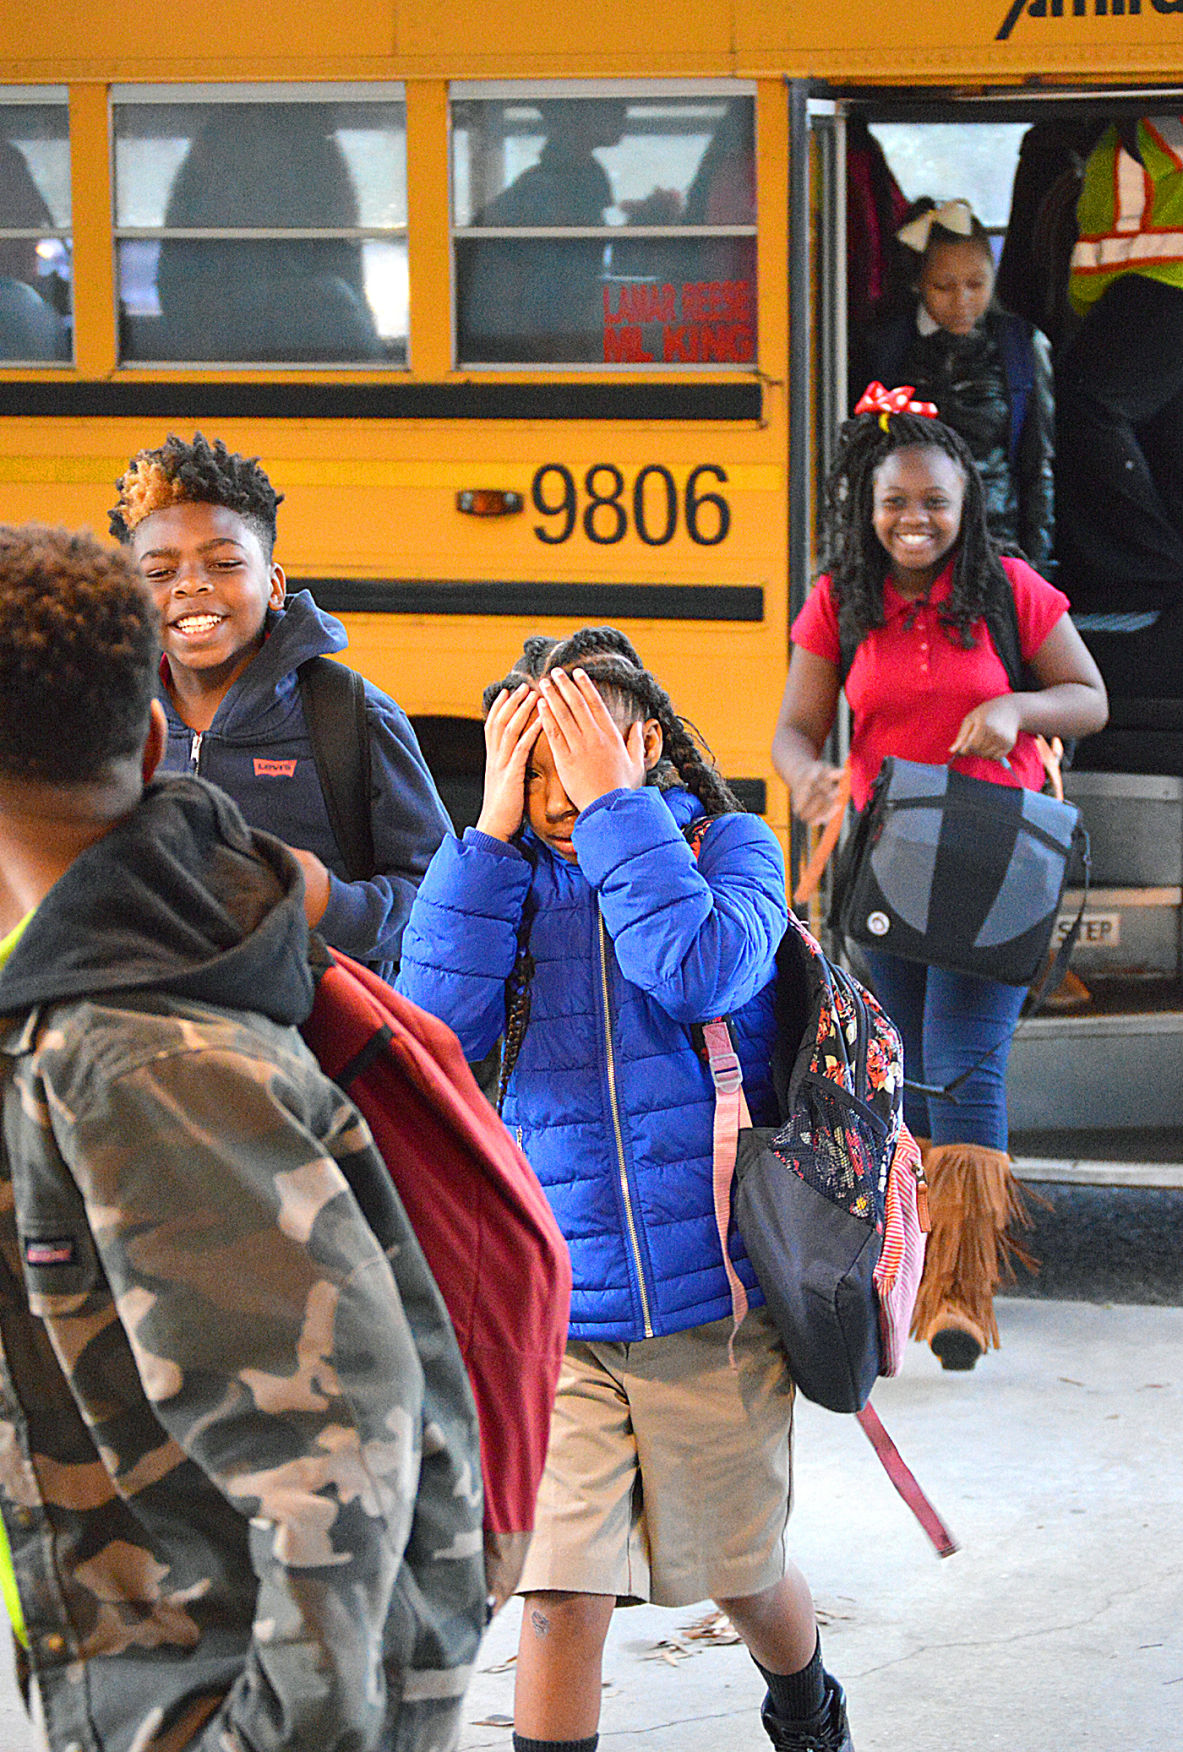 Dougherty County Schools Re Open Officials Await Numbers To Assess Student Attendance Local